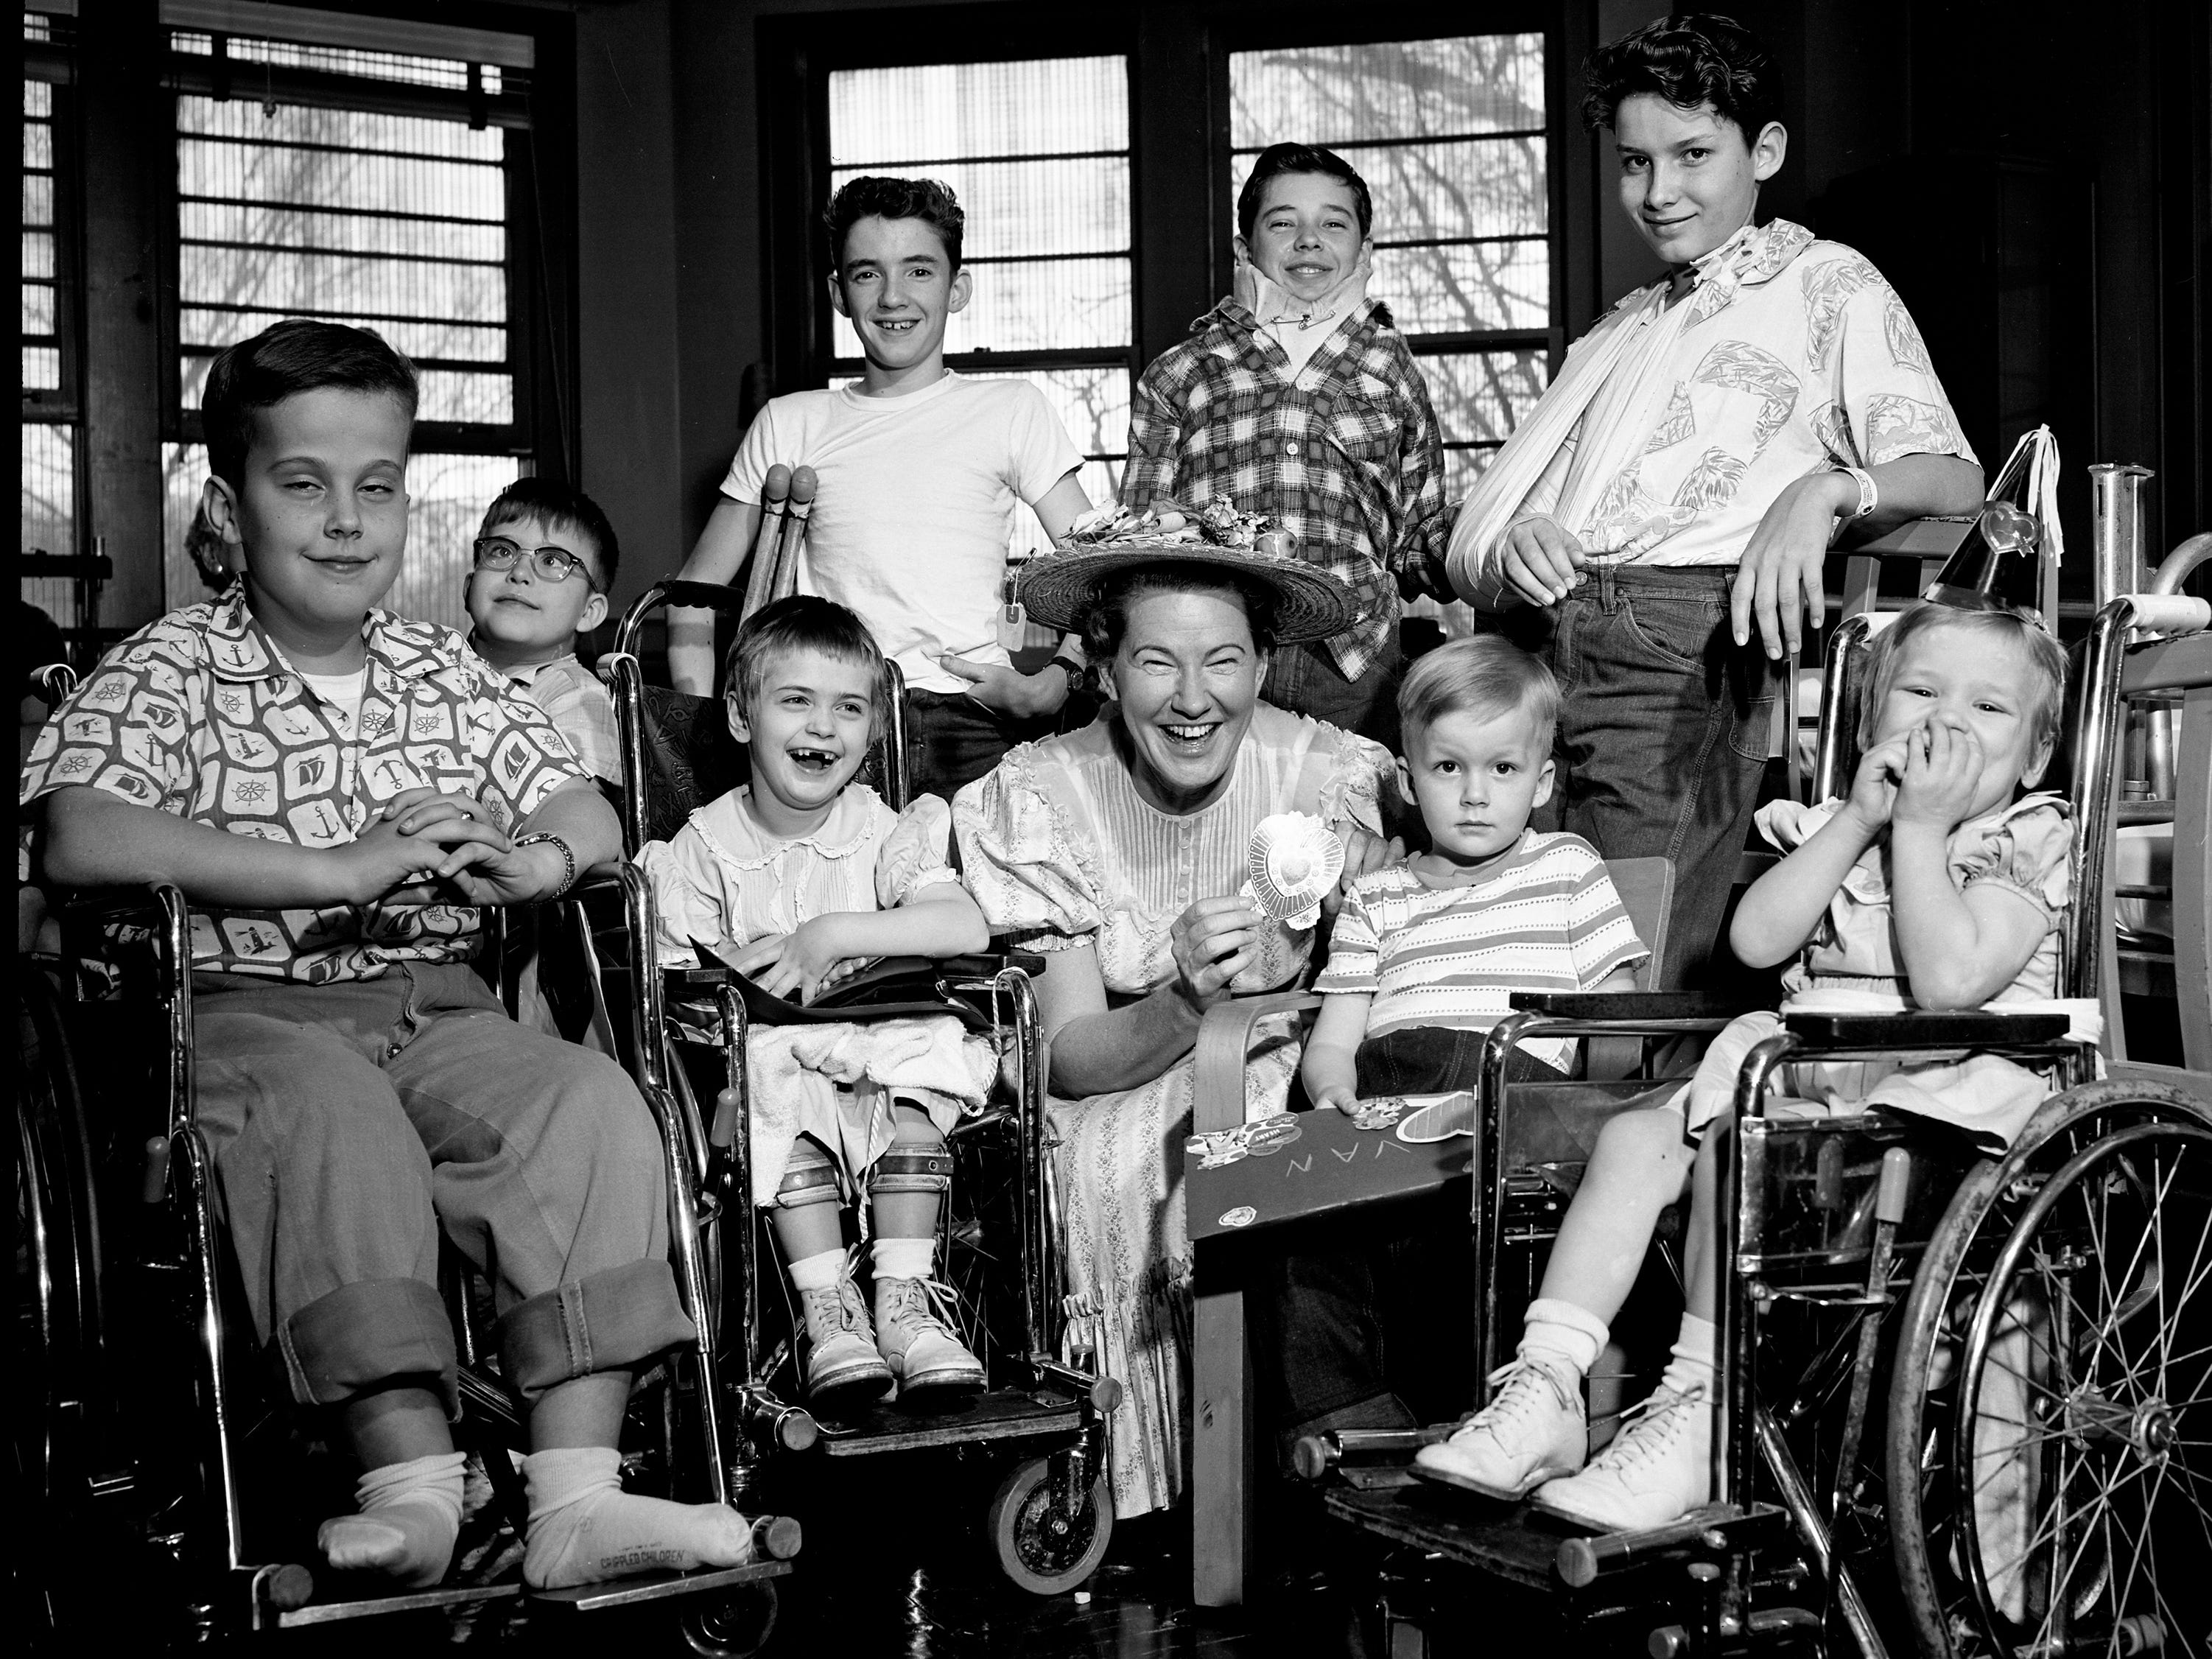 Country music star Minnie Pearl, center, is entertaining the patients during the Valentine party at the Junior League Home for Crippled Children in Nashville on Feb. 14, 1962.